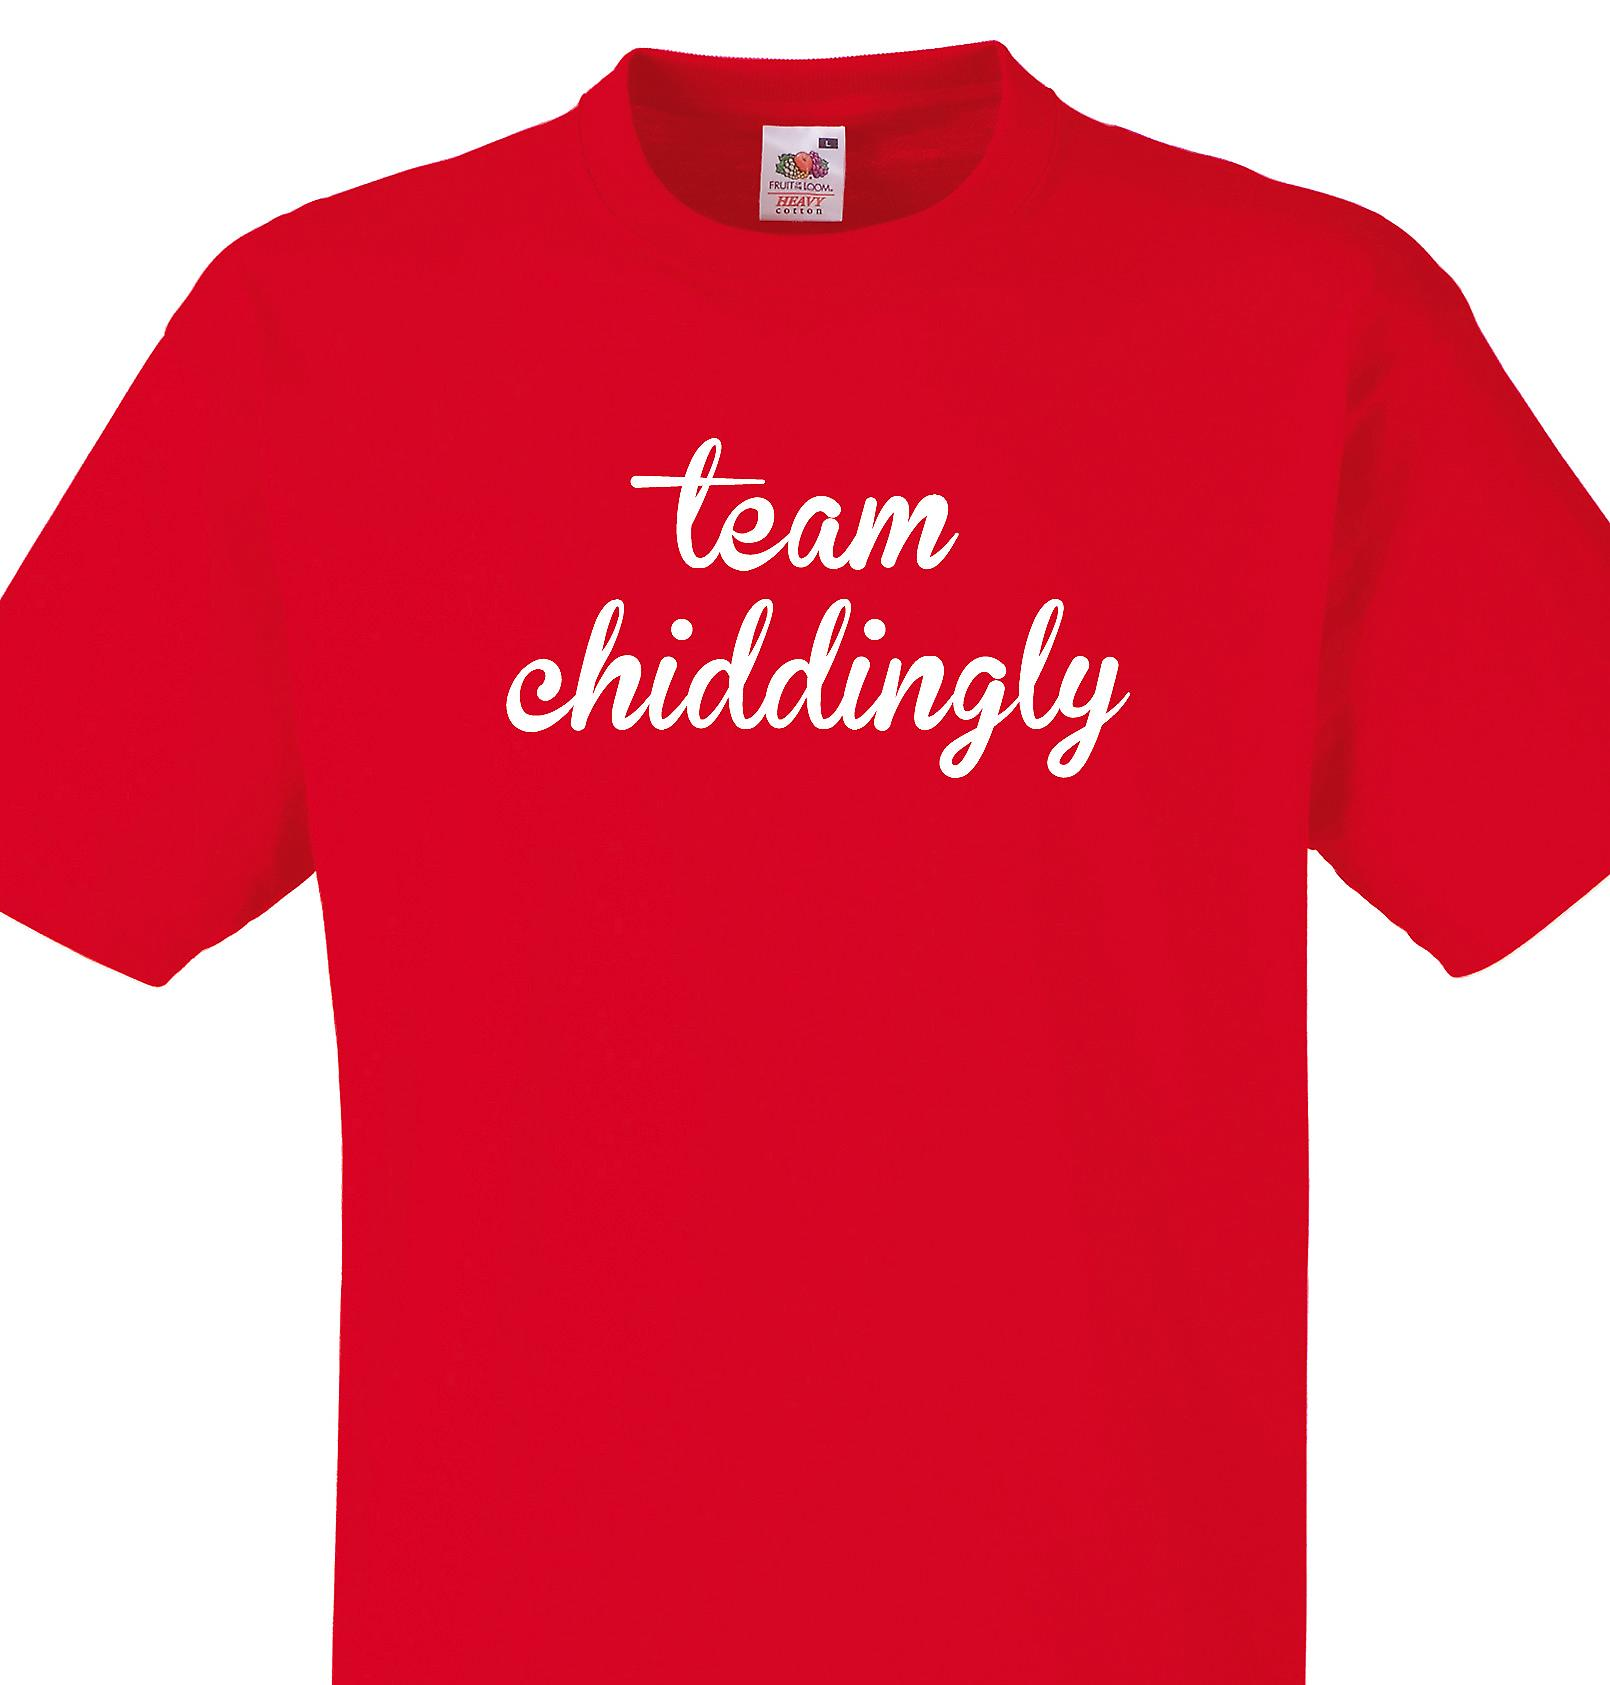 Team Chiddingly Red T shirt